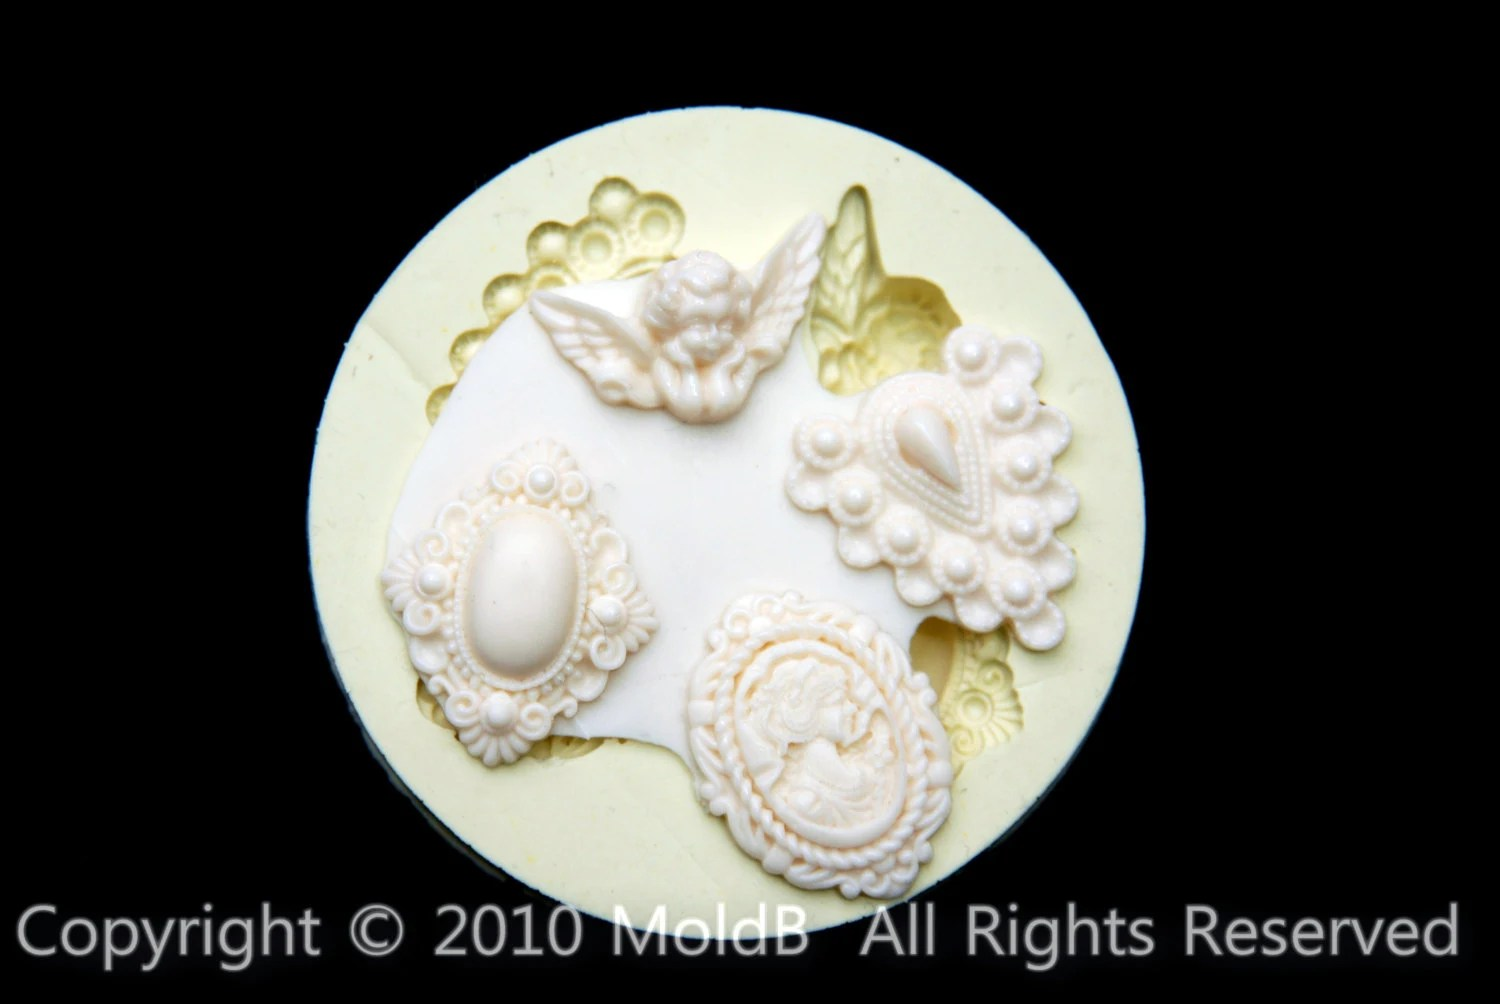 Silicone Soap Molds Australia Silicone Moldssugarcraft Molds Polymer Claysoap Molds Cake